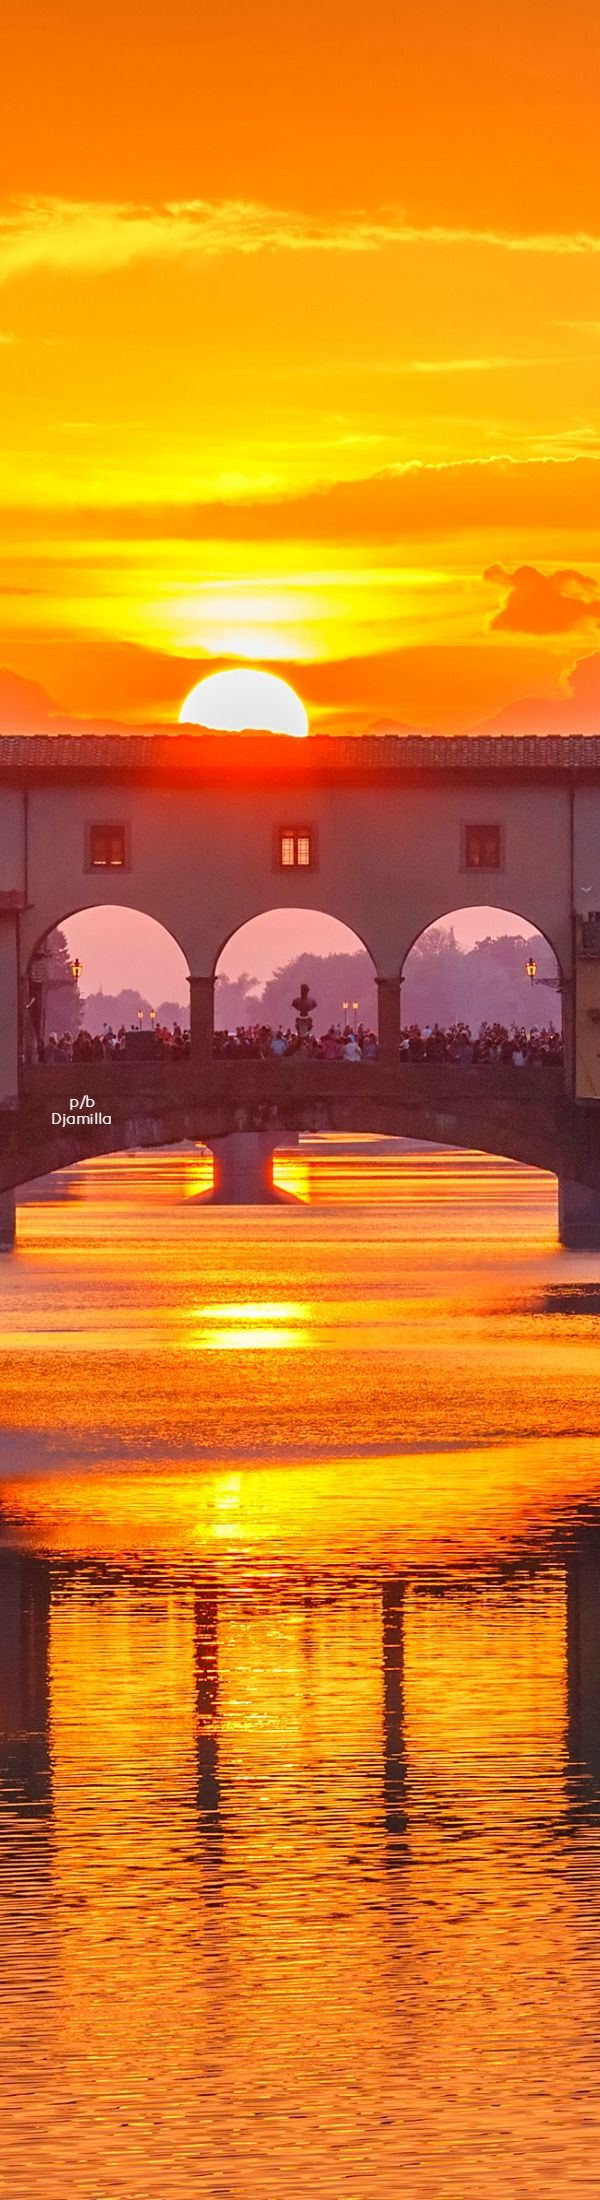 Sunset at the oldest bridge in Florence, the Ponte Vecchio